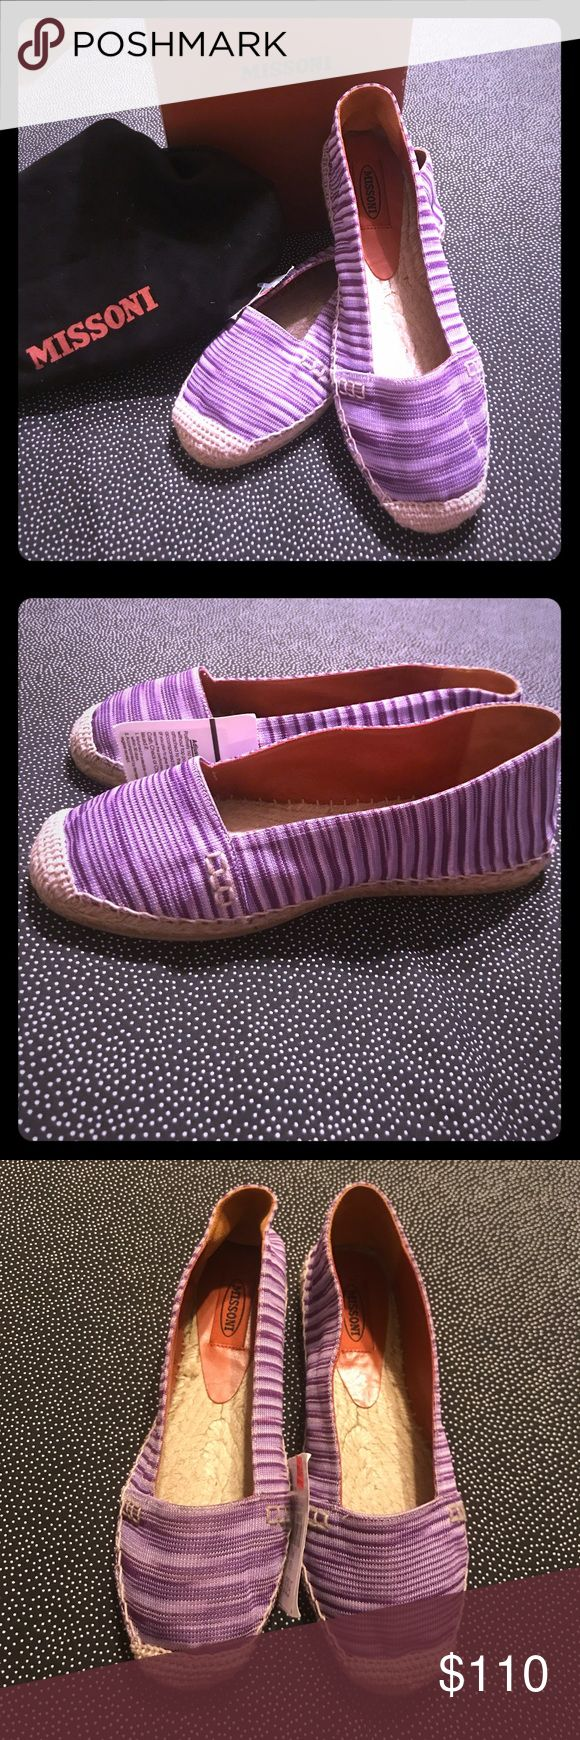 Missoni NWT Purple Stripe Espadrille Flats- Size 8 Missoni Purple Stripe Espadrille Flats - Size 8 US/38 EU - NEW W/ TAGS/DUSTBAG IN ORIGINAL BOX!  Ahh, these shoes are so cute!  Alas, it was one of my impulse buys while in NYC a while back & never wore them so Poshmark they go!  Pick yourself up some great designer shoes at an excellent price! Missoni Shoes Espadrilles